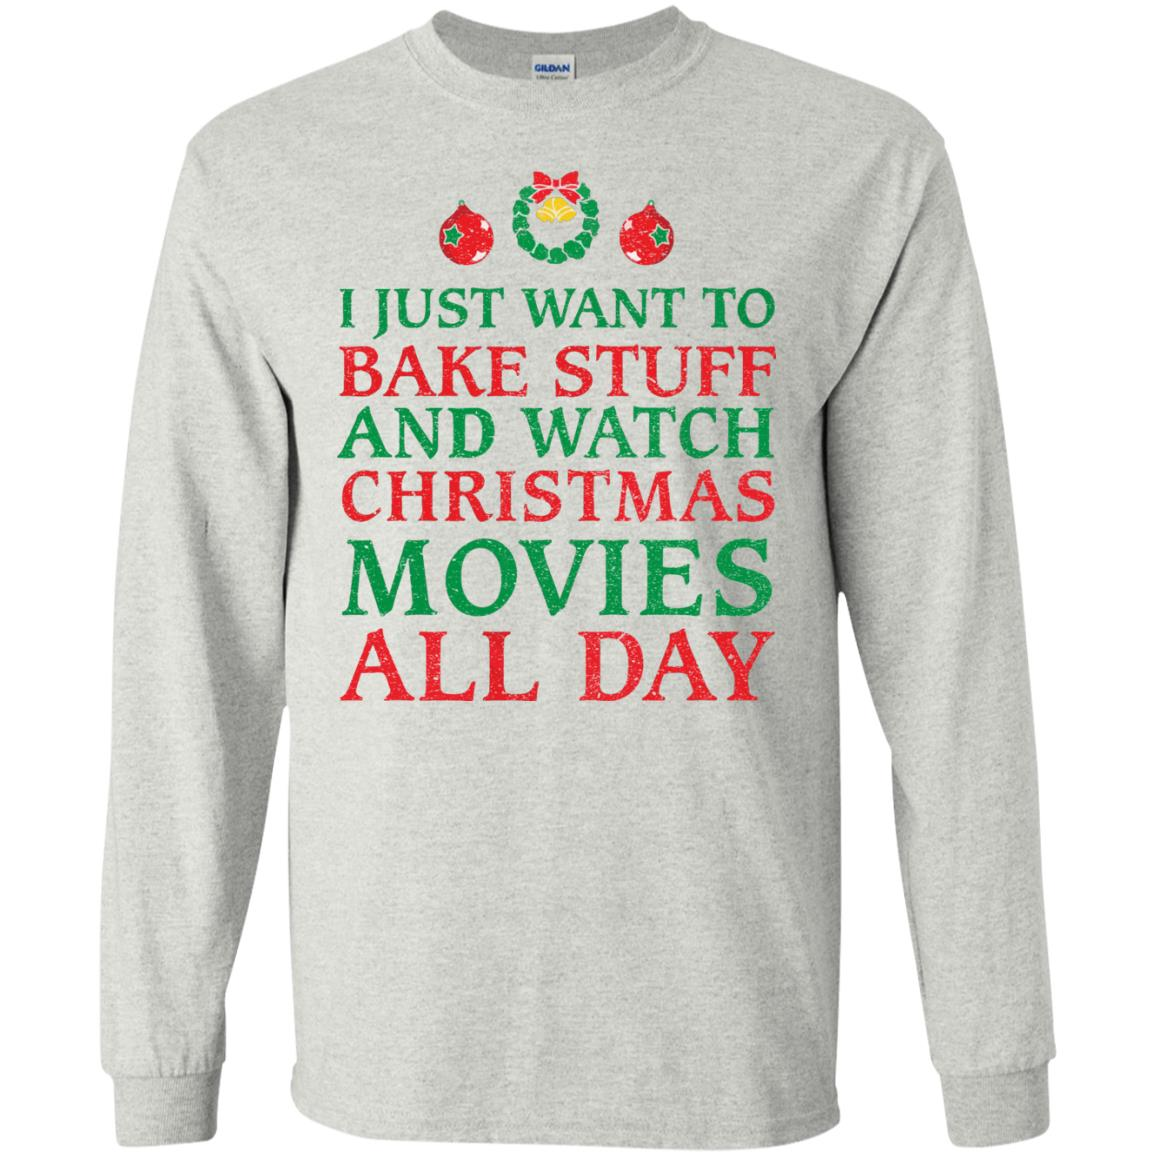 image 2696 - I Just Want to Bake Stuff and Watch Christmas Movie All Day Sweater, Ugly Sweatshirts